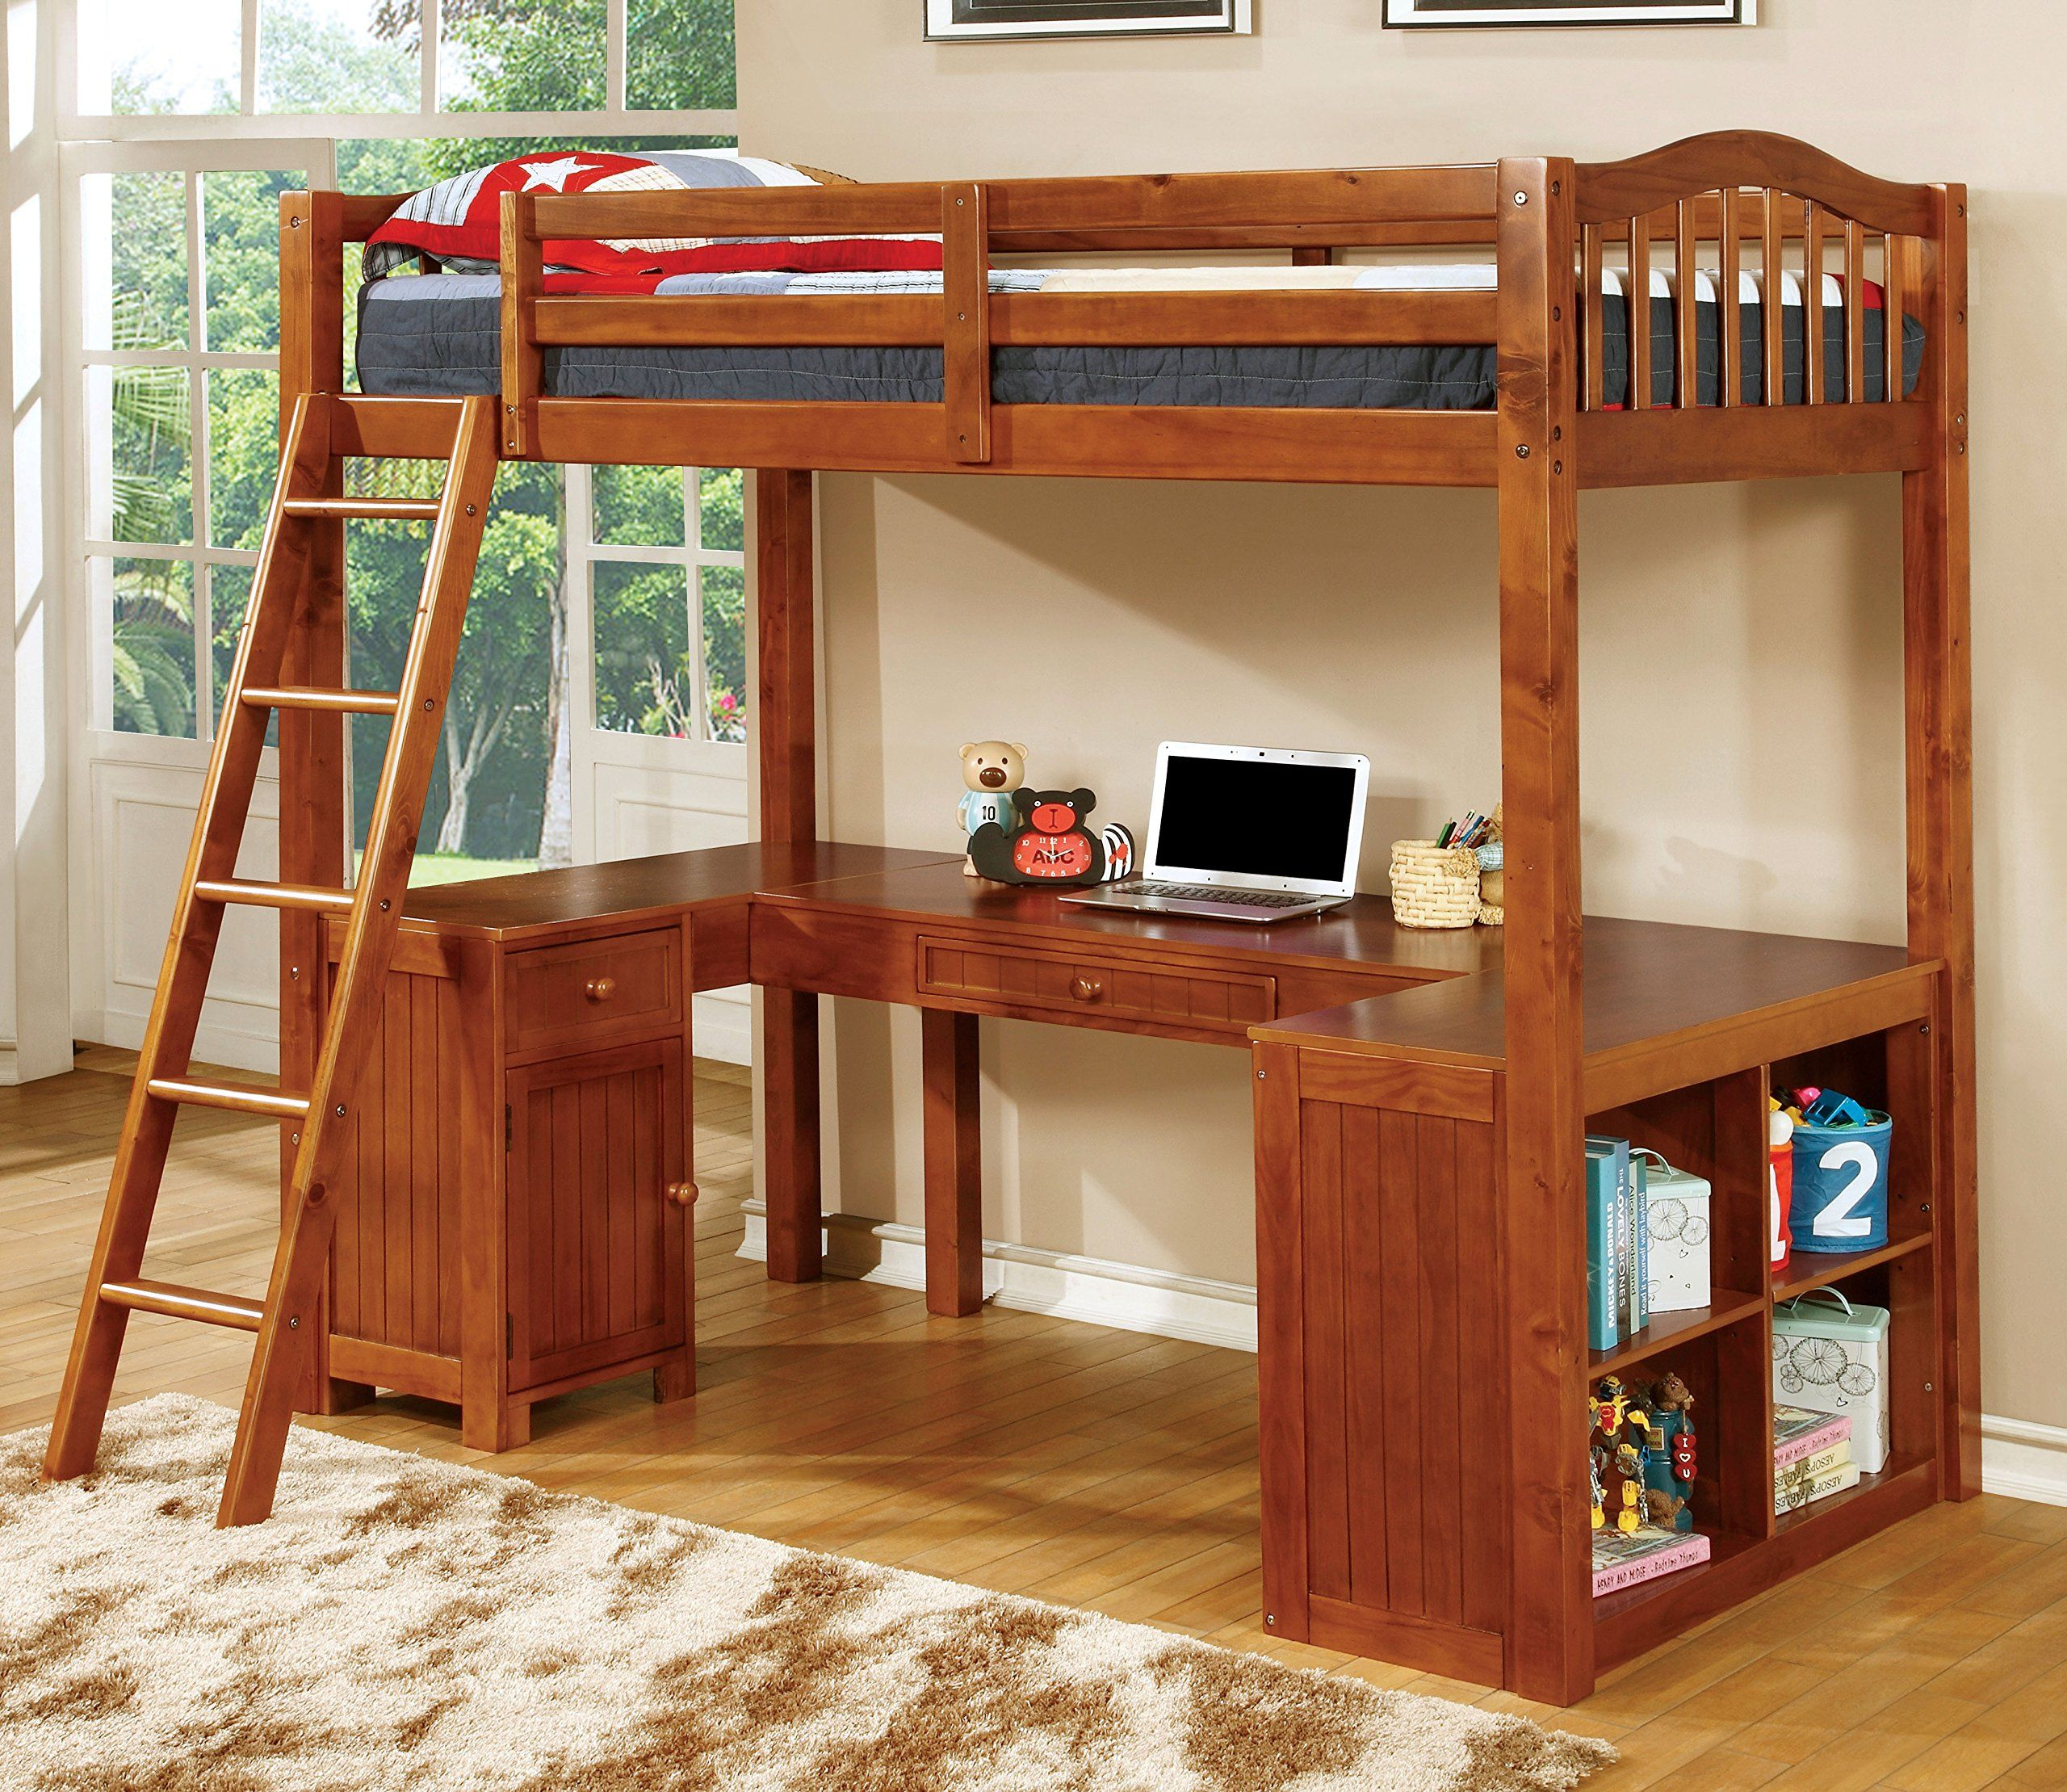 Furniture Of America Lavinia Twin Loft Bed With Workstation 41 625 By 80 By 75 Inch Oak Twin Loft Bed Bed With Desk Underneath Bunk Bed With Desk